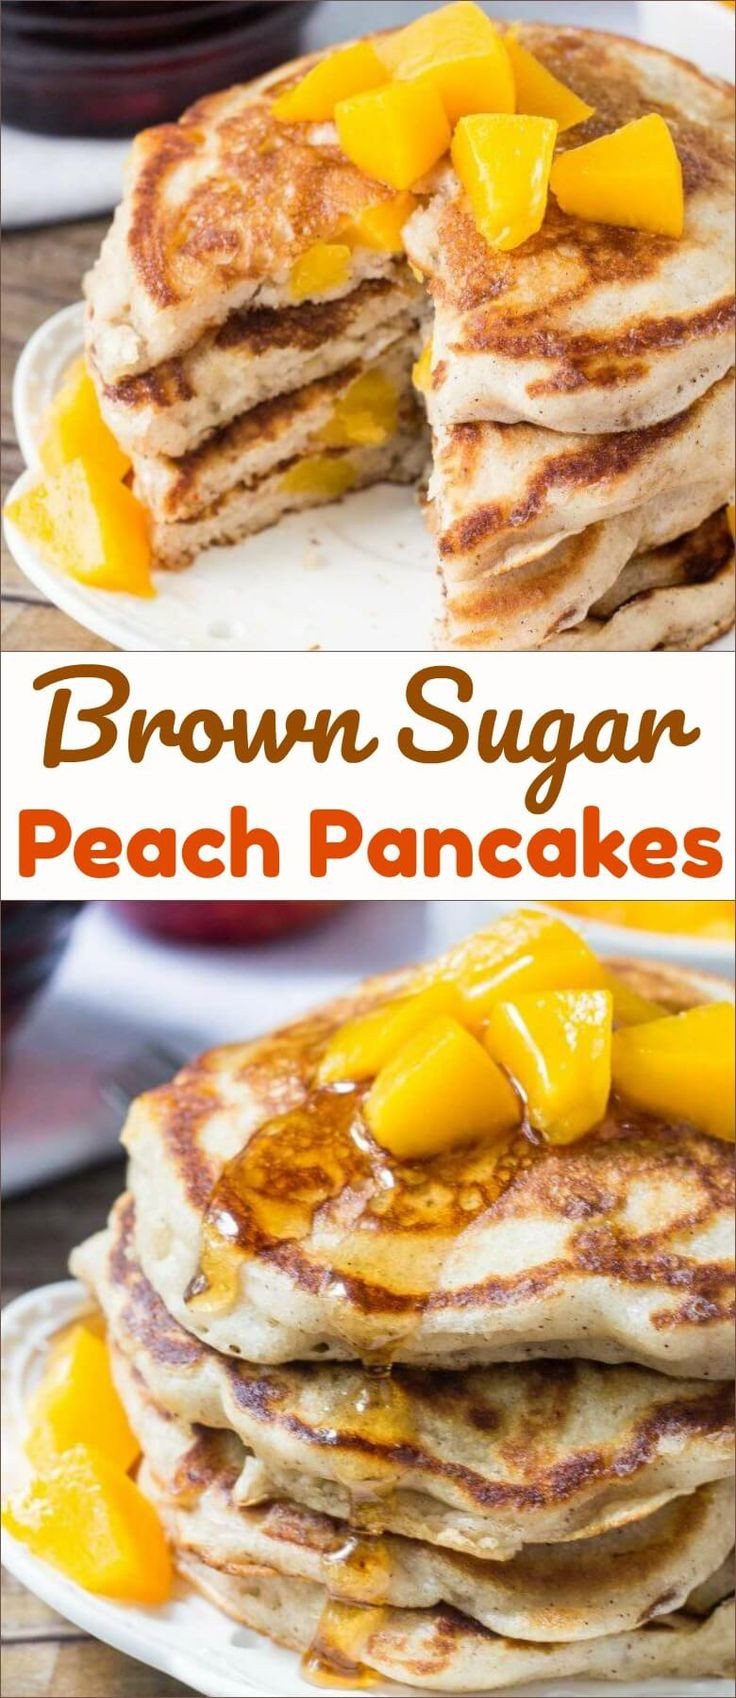 These brown sugar peach pancakes are light & fluffy with golden edges and a delicious hint of brown sugar & cinnamon. Make them with fresh or canned peaches for the perfect breakfast pancakes. via @ohsweetbasil